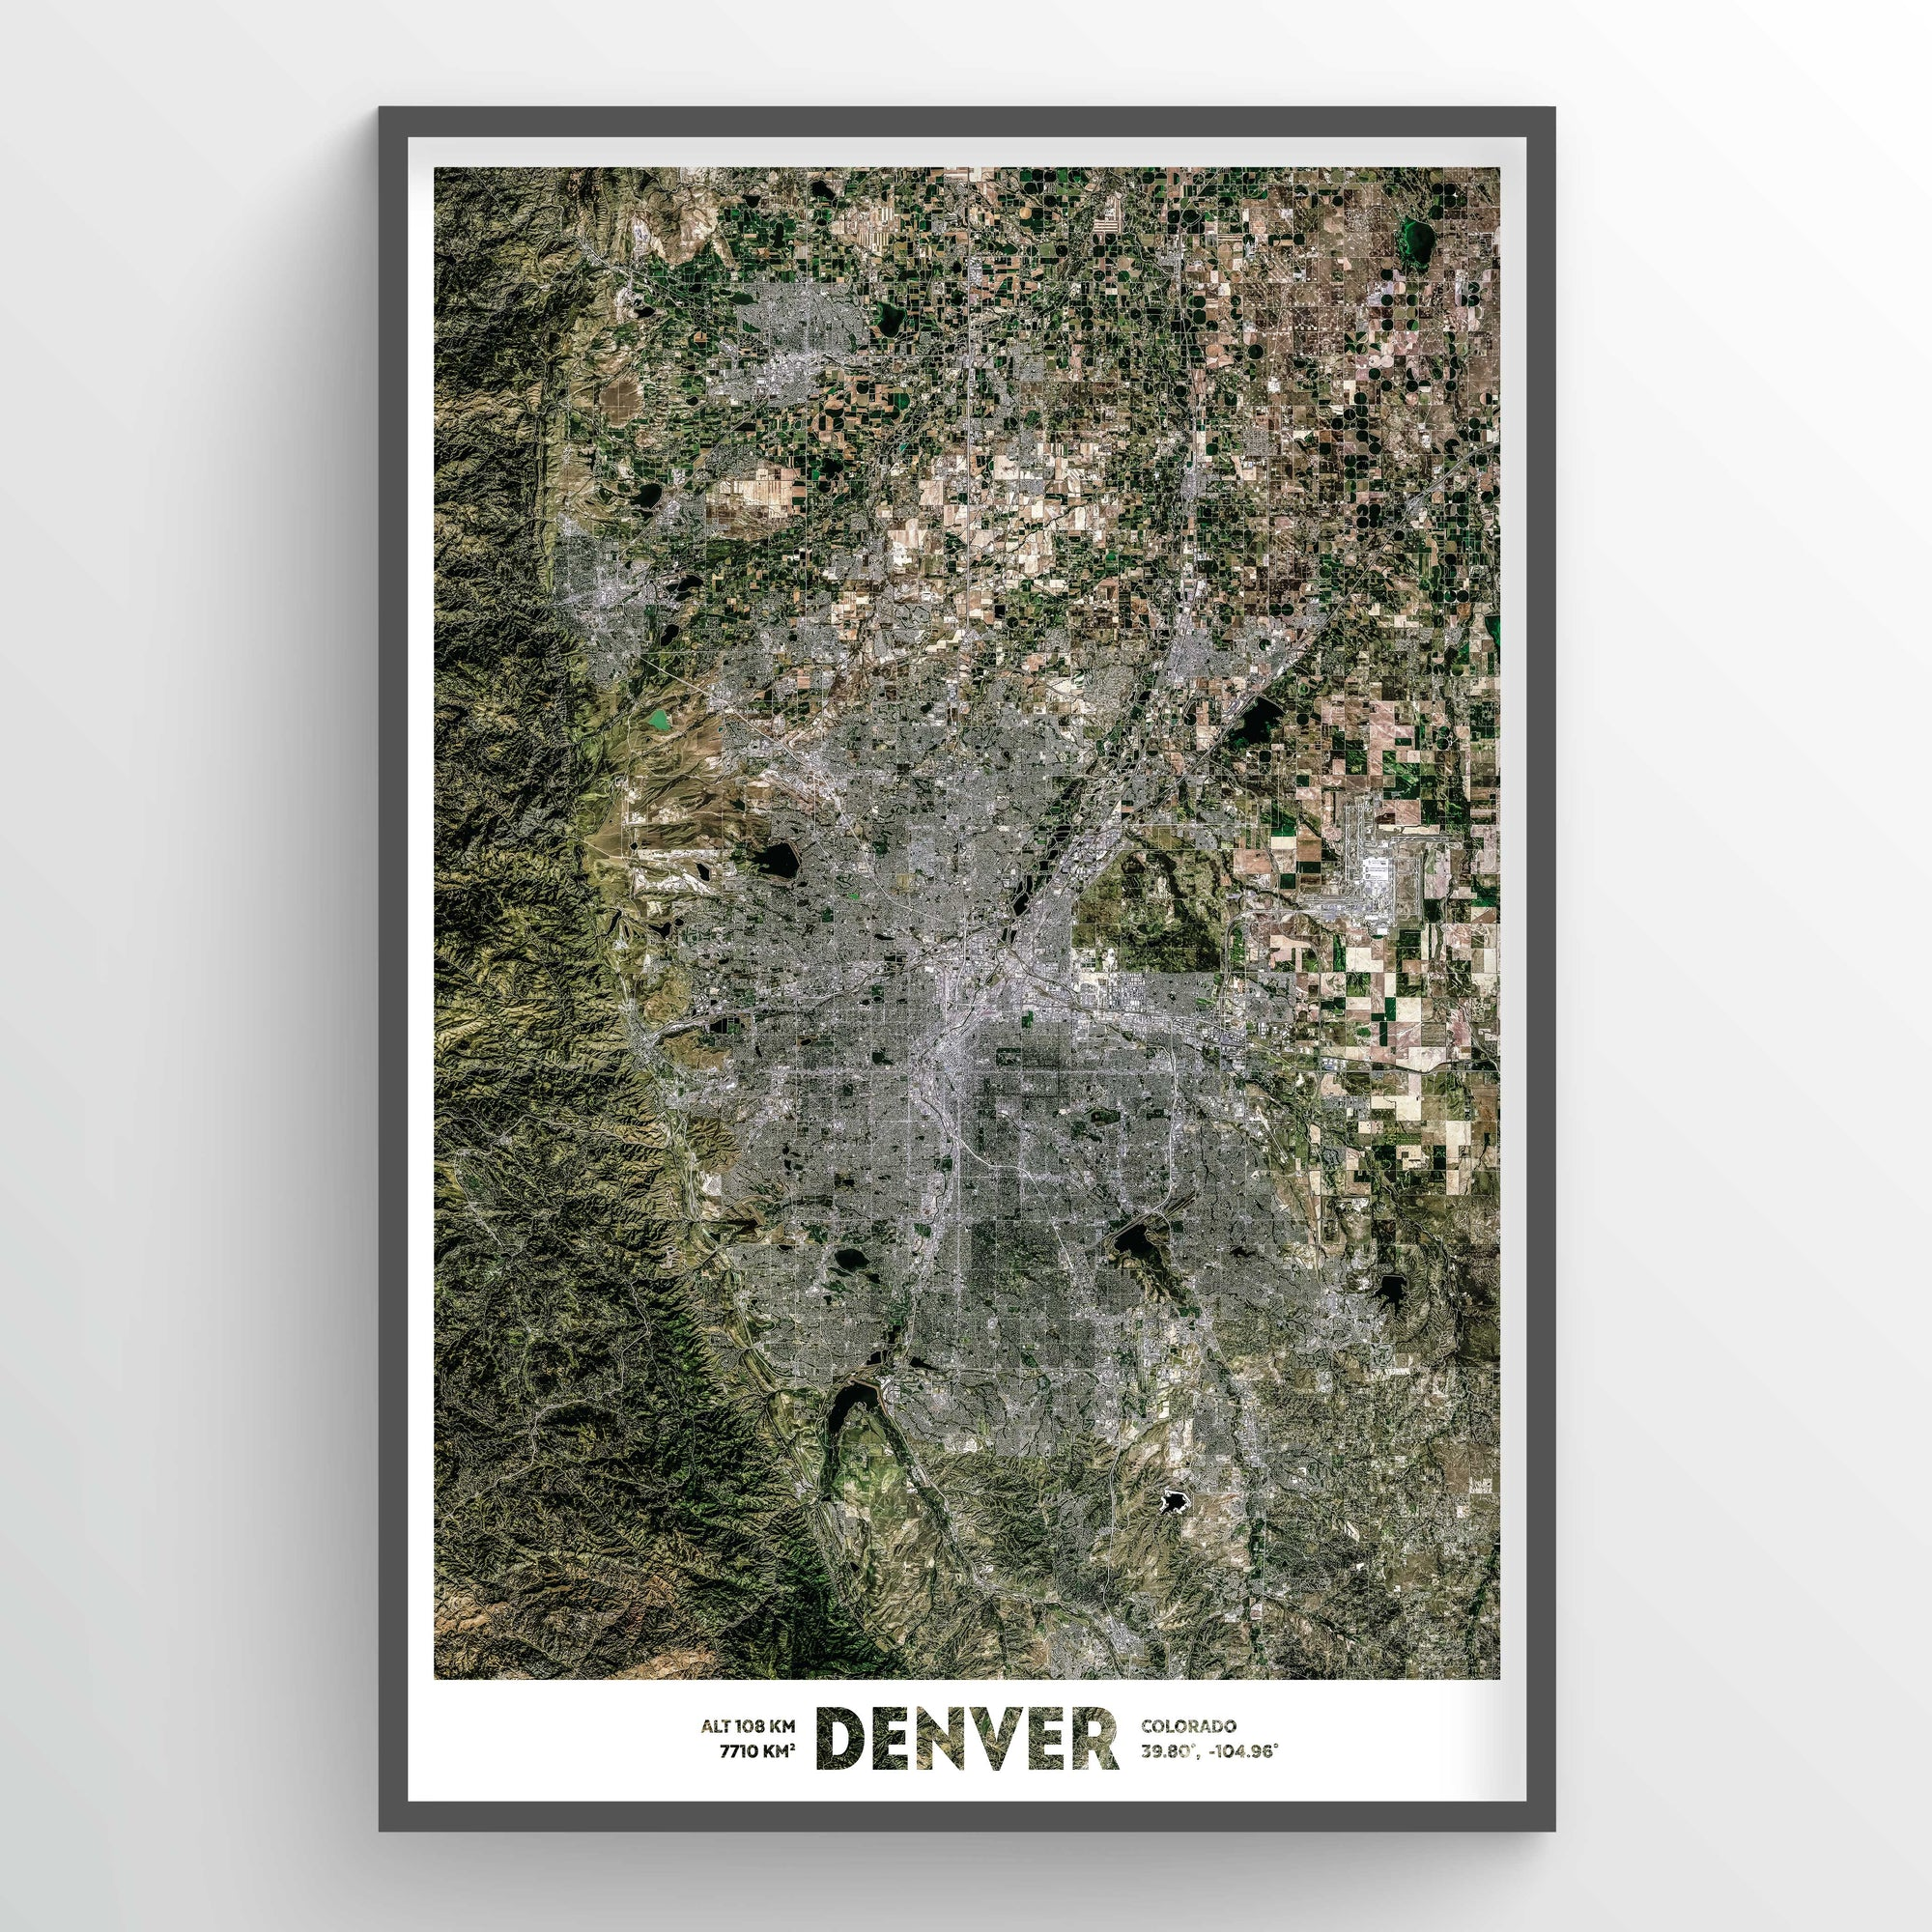 Denver Earth Photography - Art Print - Point Two Design